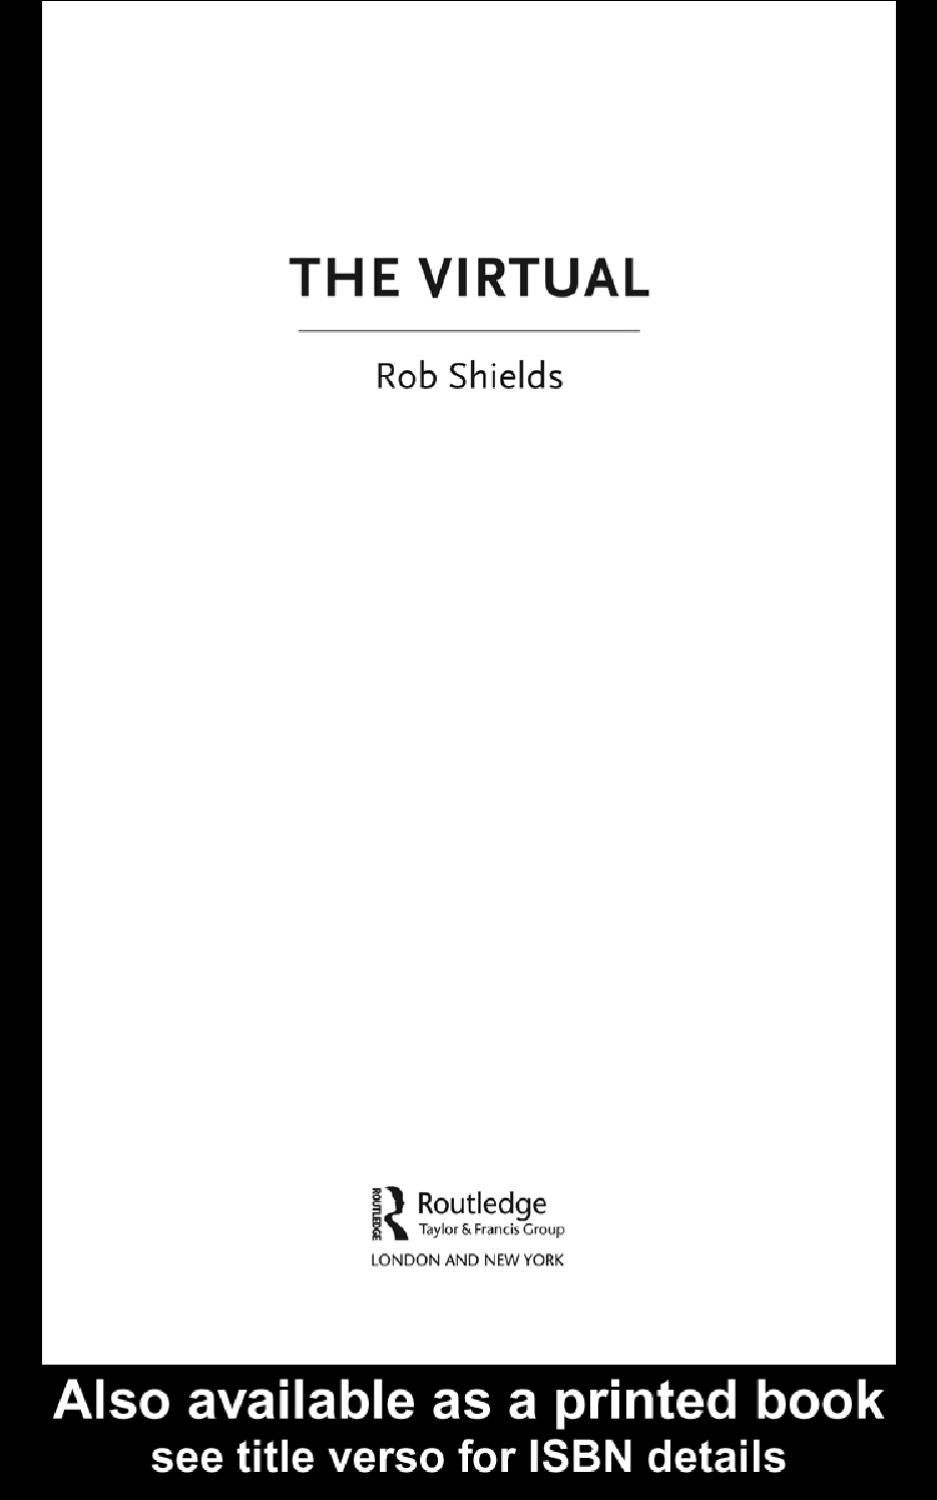 KI The Virtual by thiago zanotti - issuu